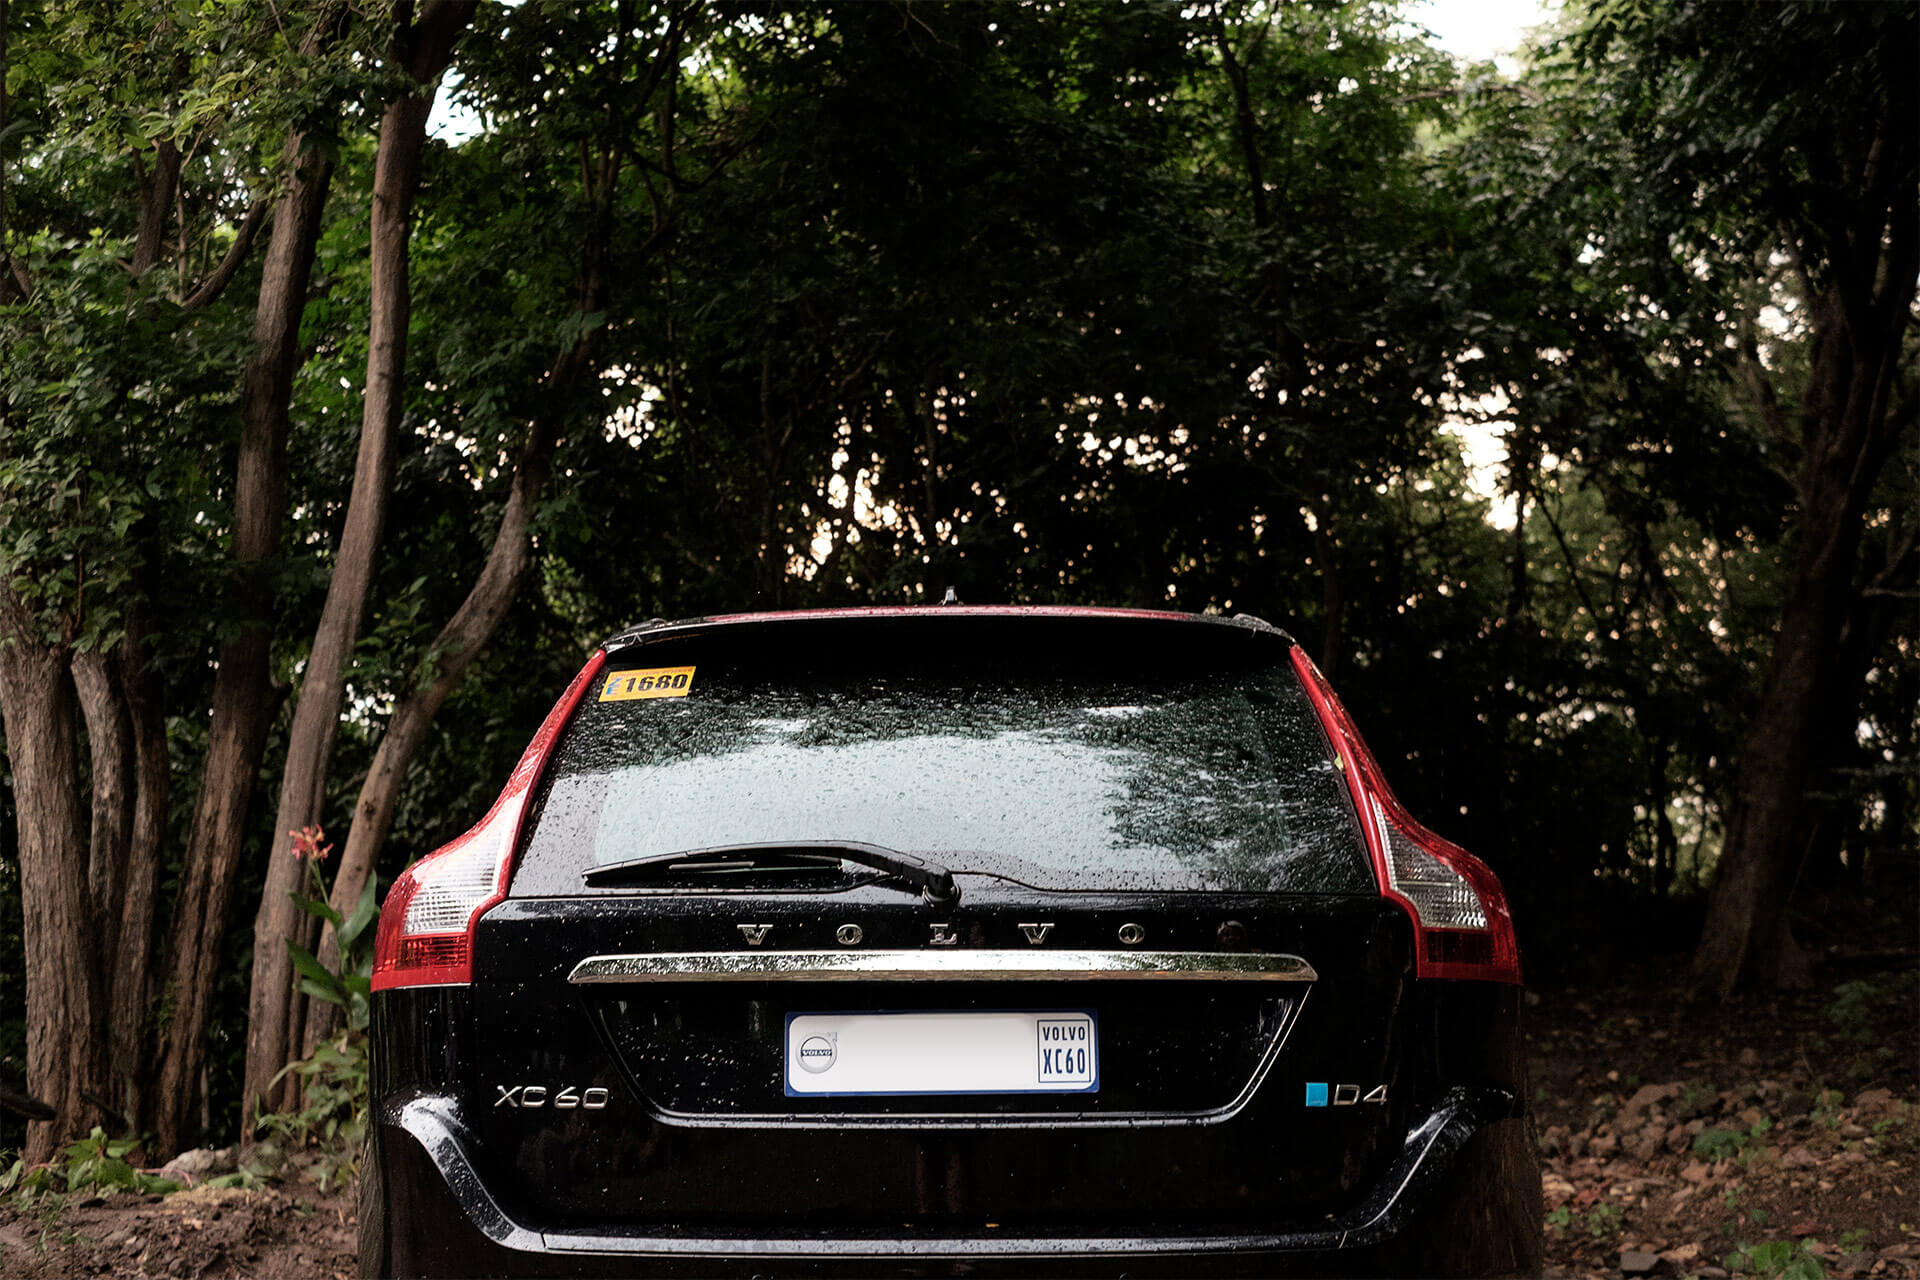 The back view of the Volvo XC60